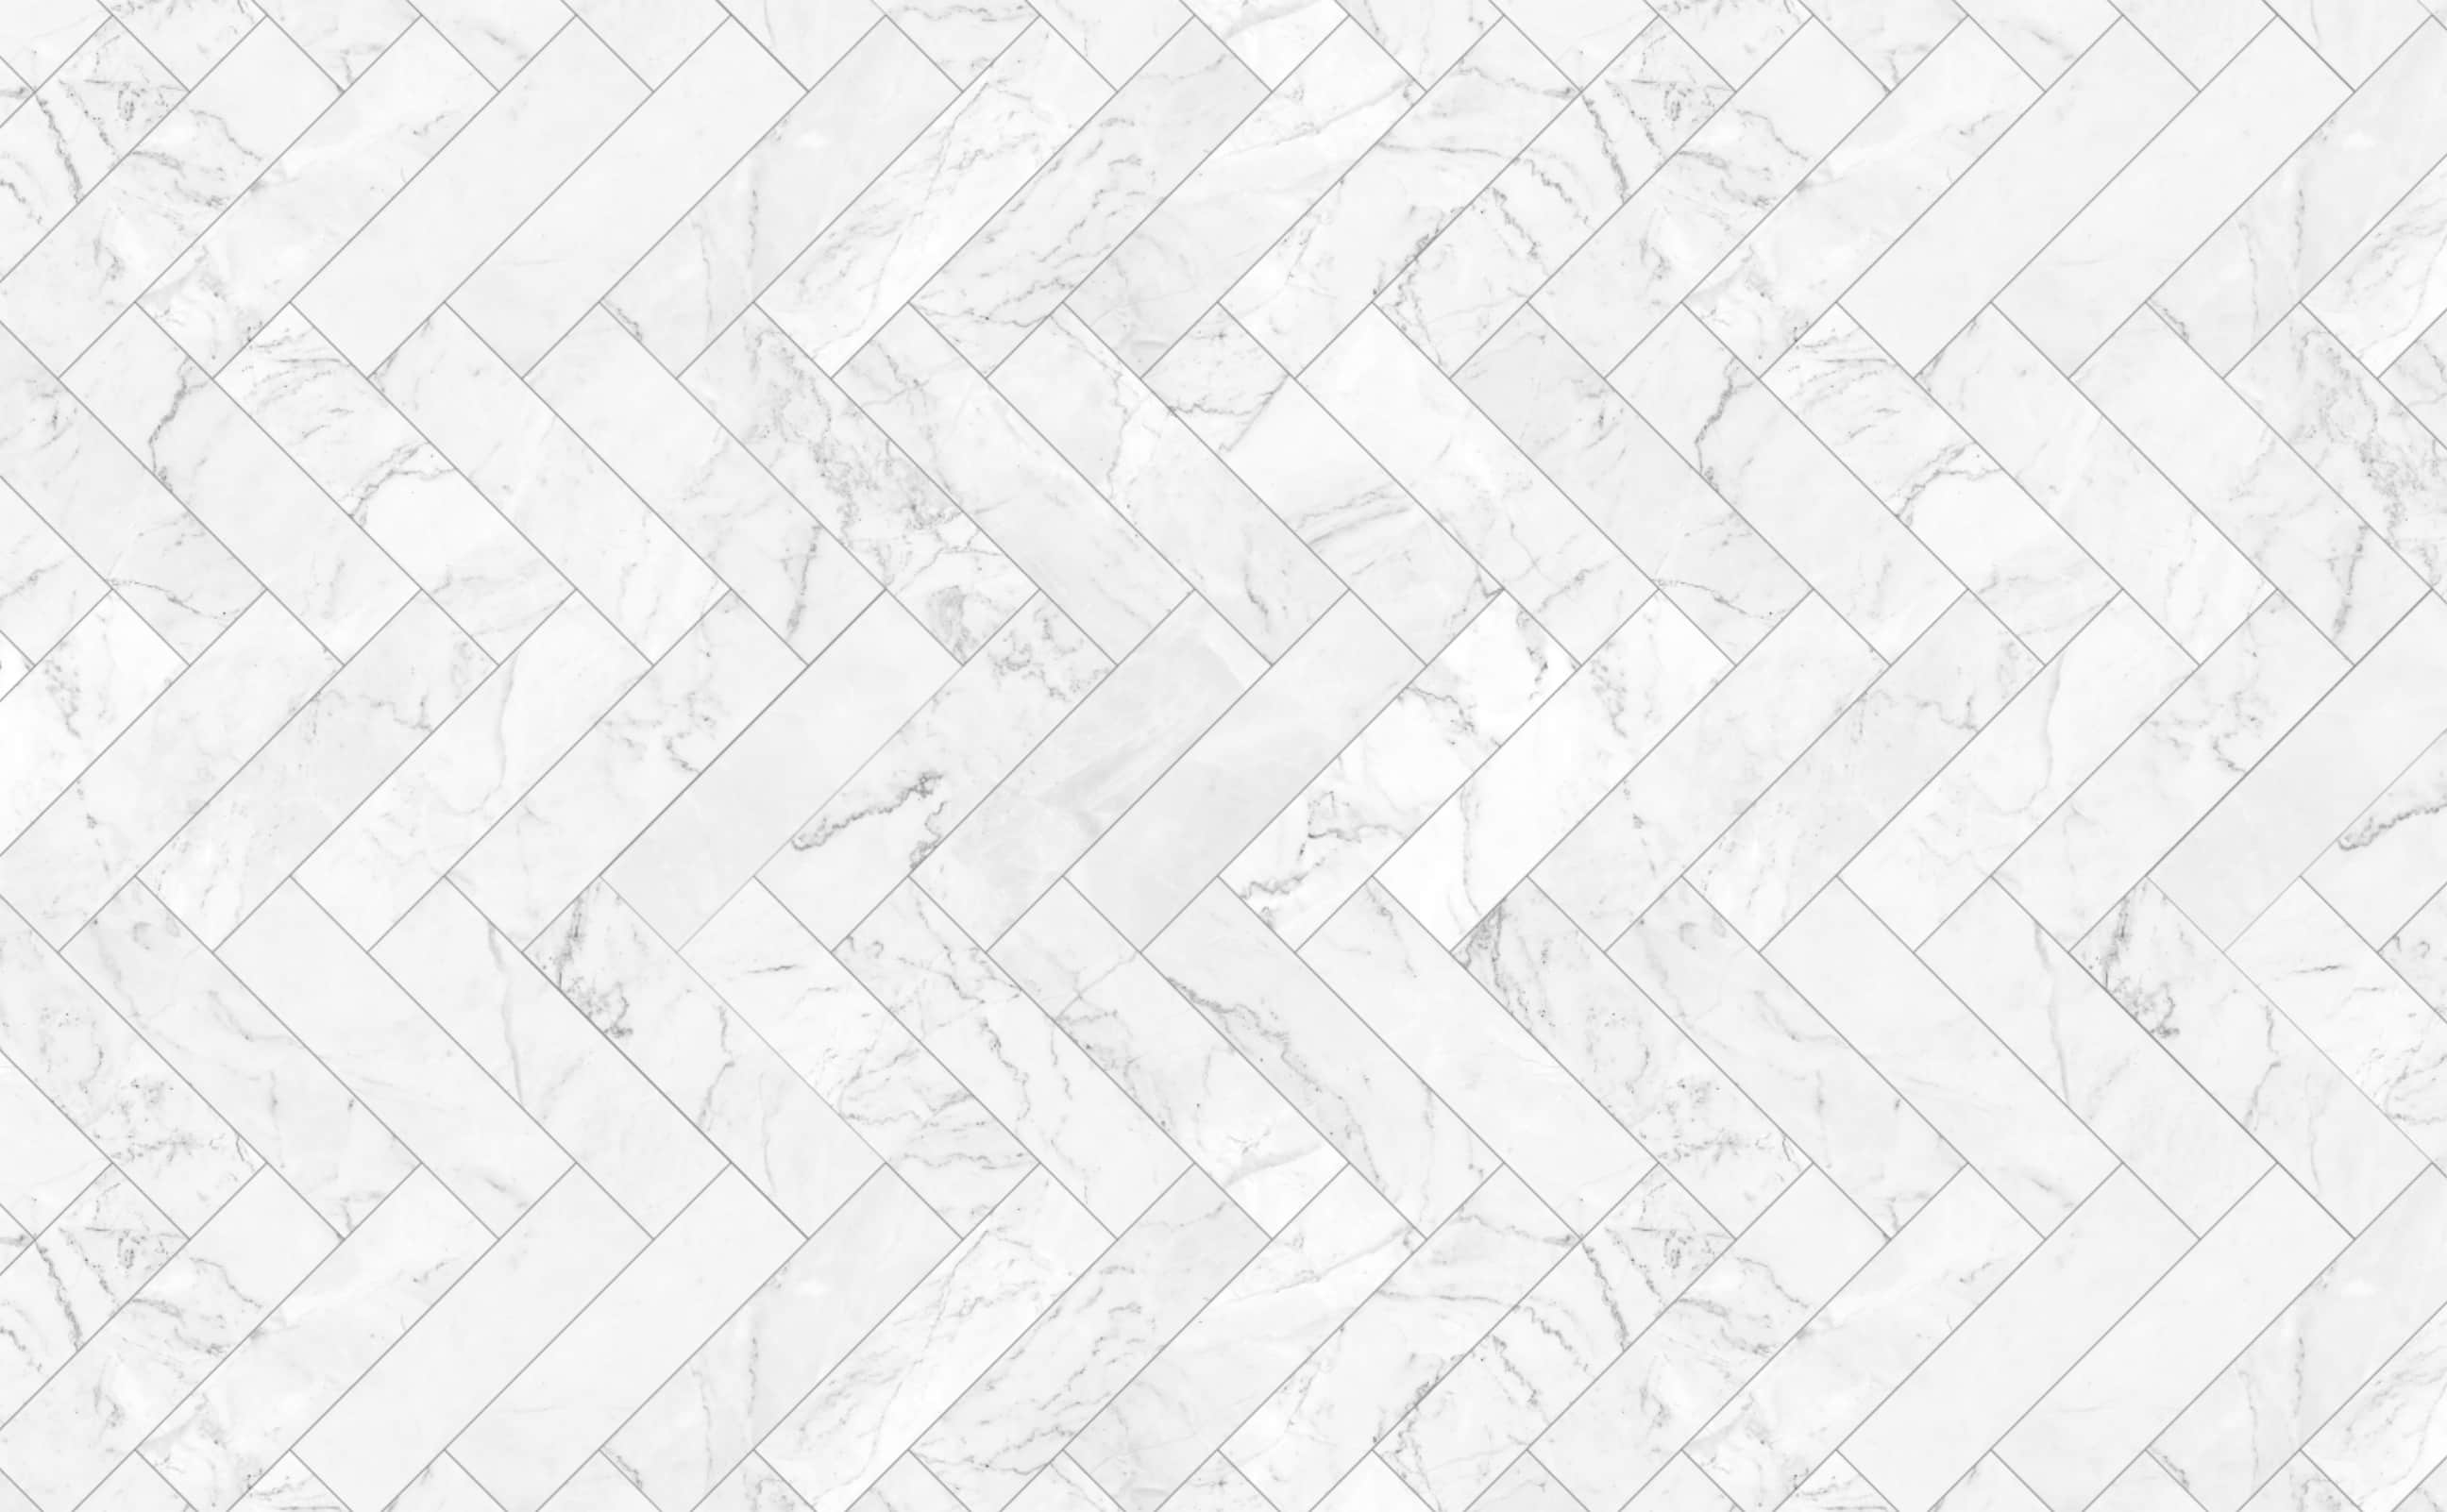 w0562 1s Carrara herringbone polished marble tile wallpaper Classic Concept Repeating Pattern Sample 1